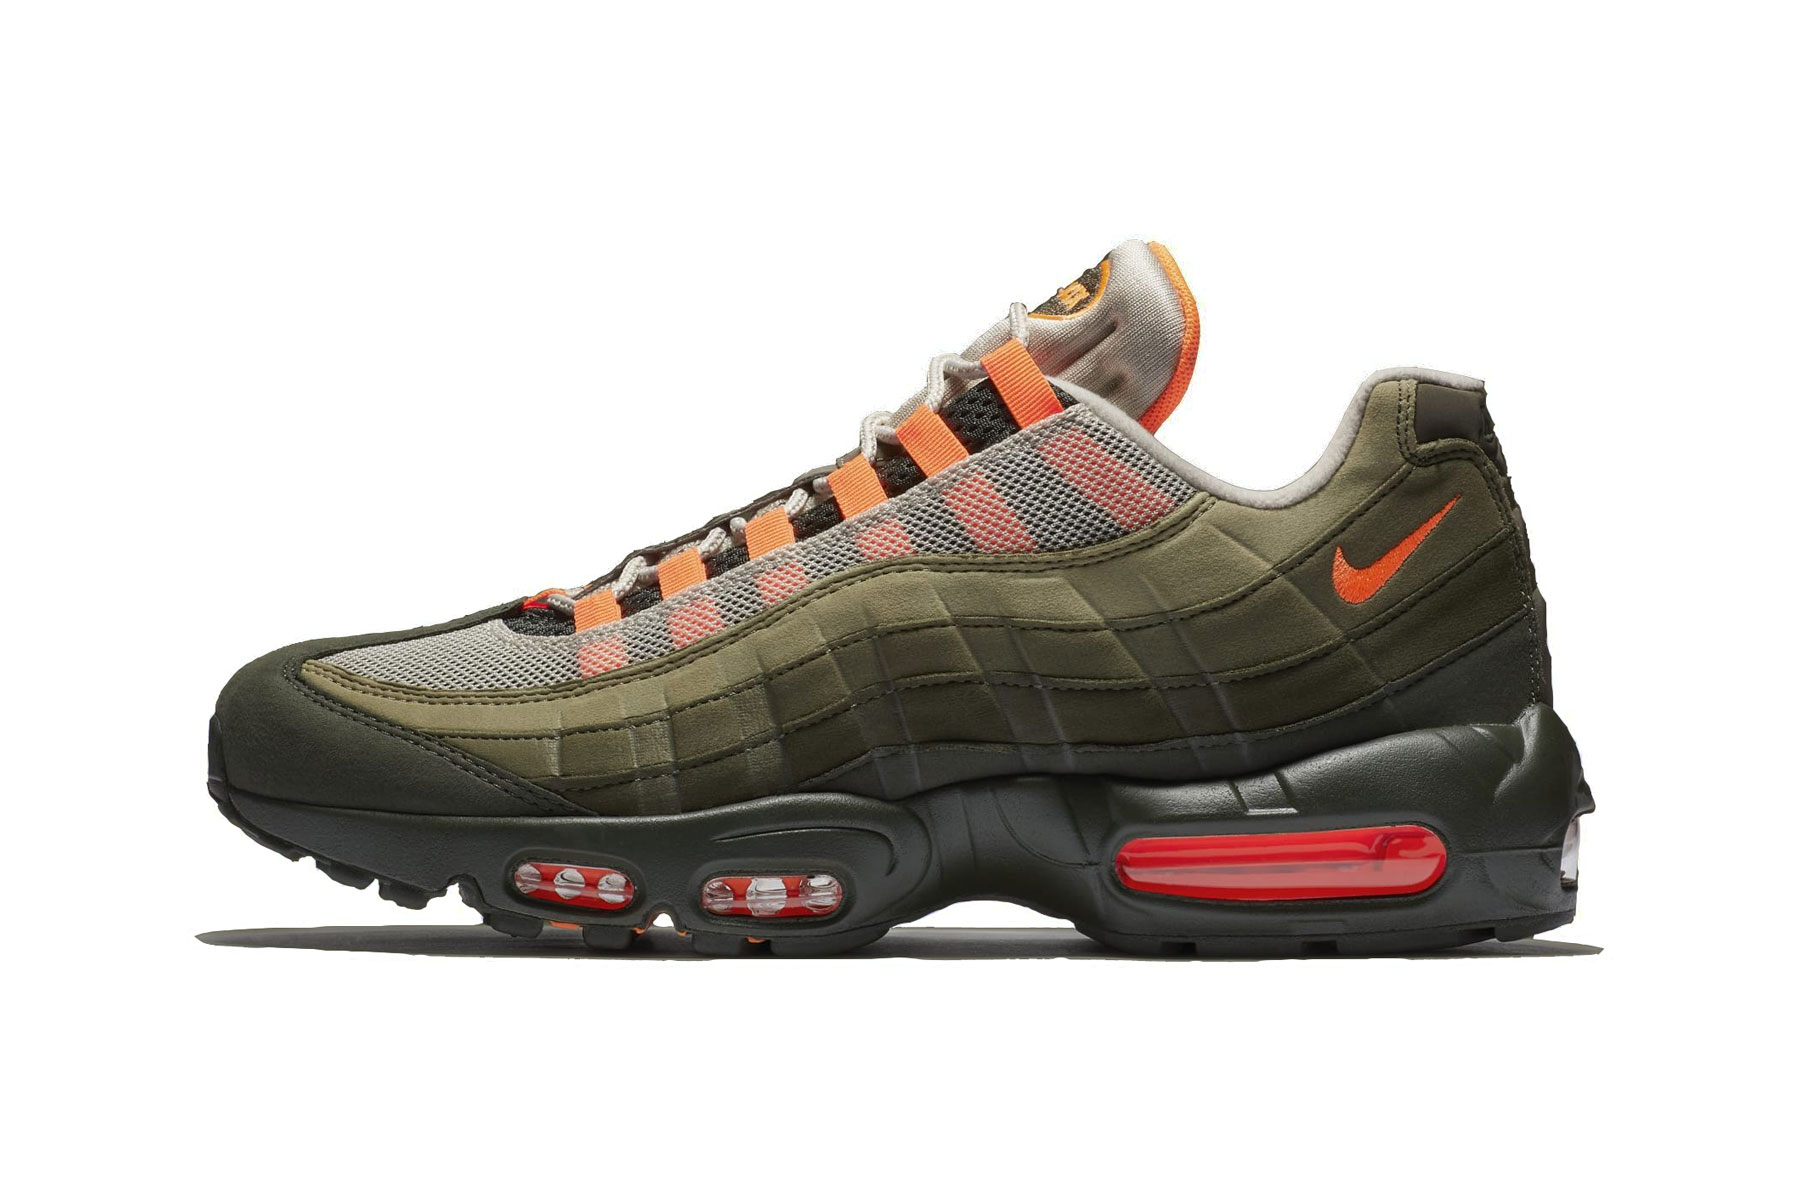 Nike Air Max 95 OG String/Total Orange-Neutral Olive